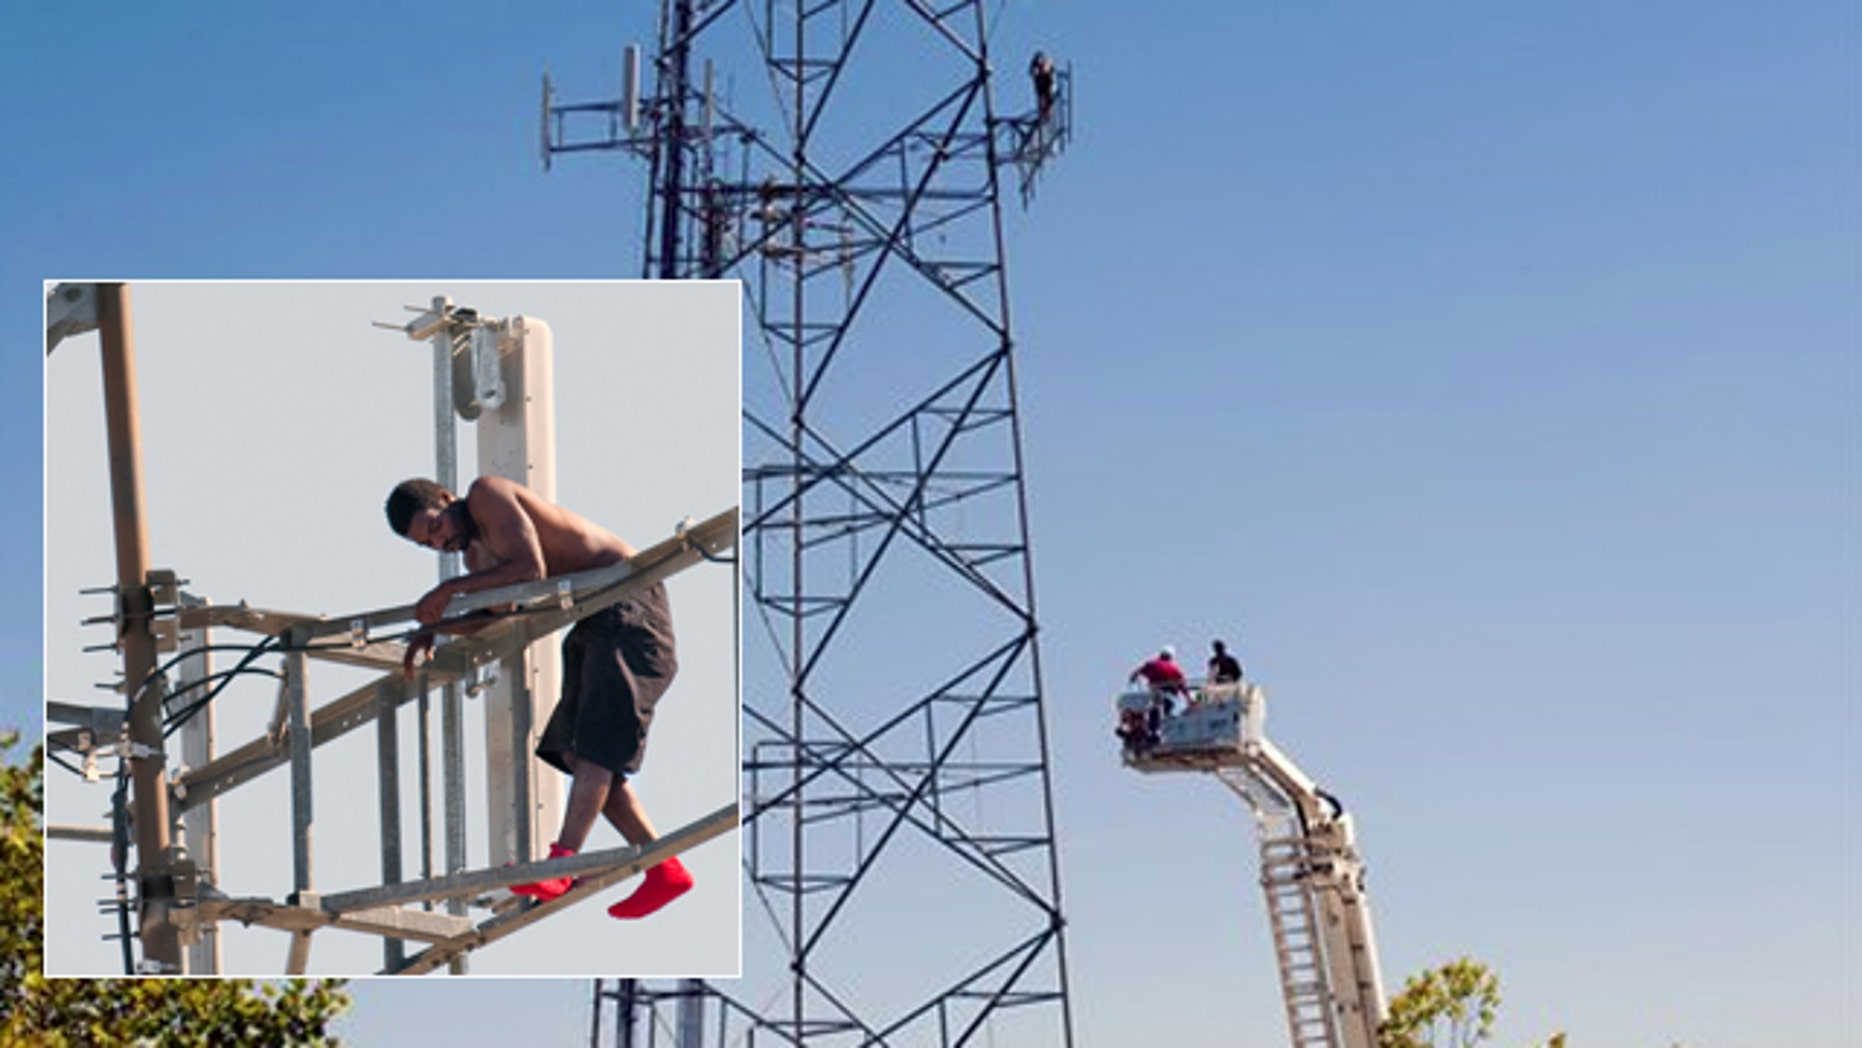 Aug. 14: Negotiators in a firetruck ladder bucket attempt to make contact with the man in the tower.